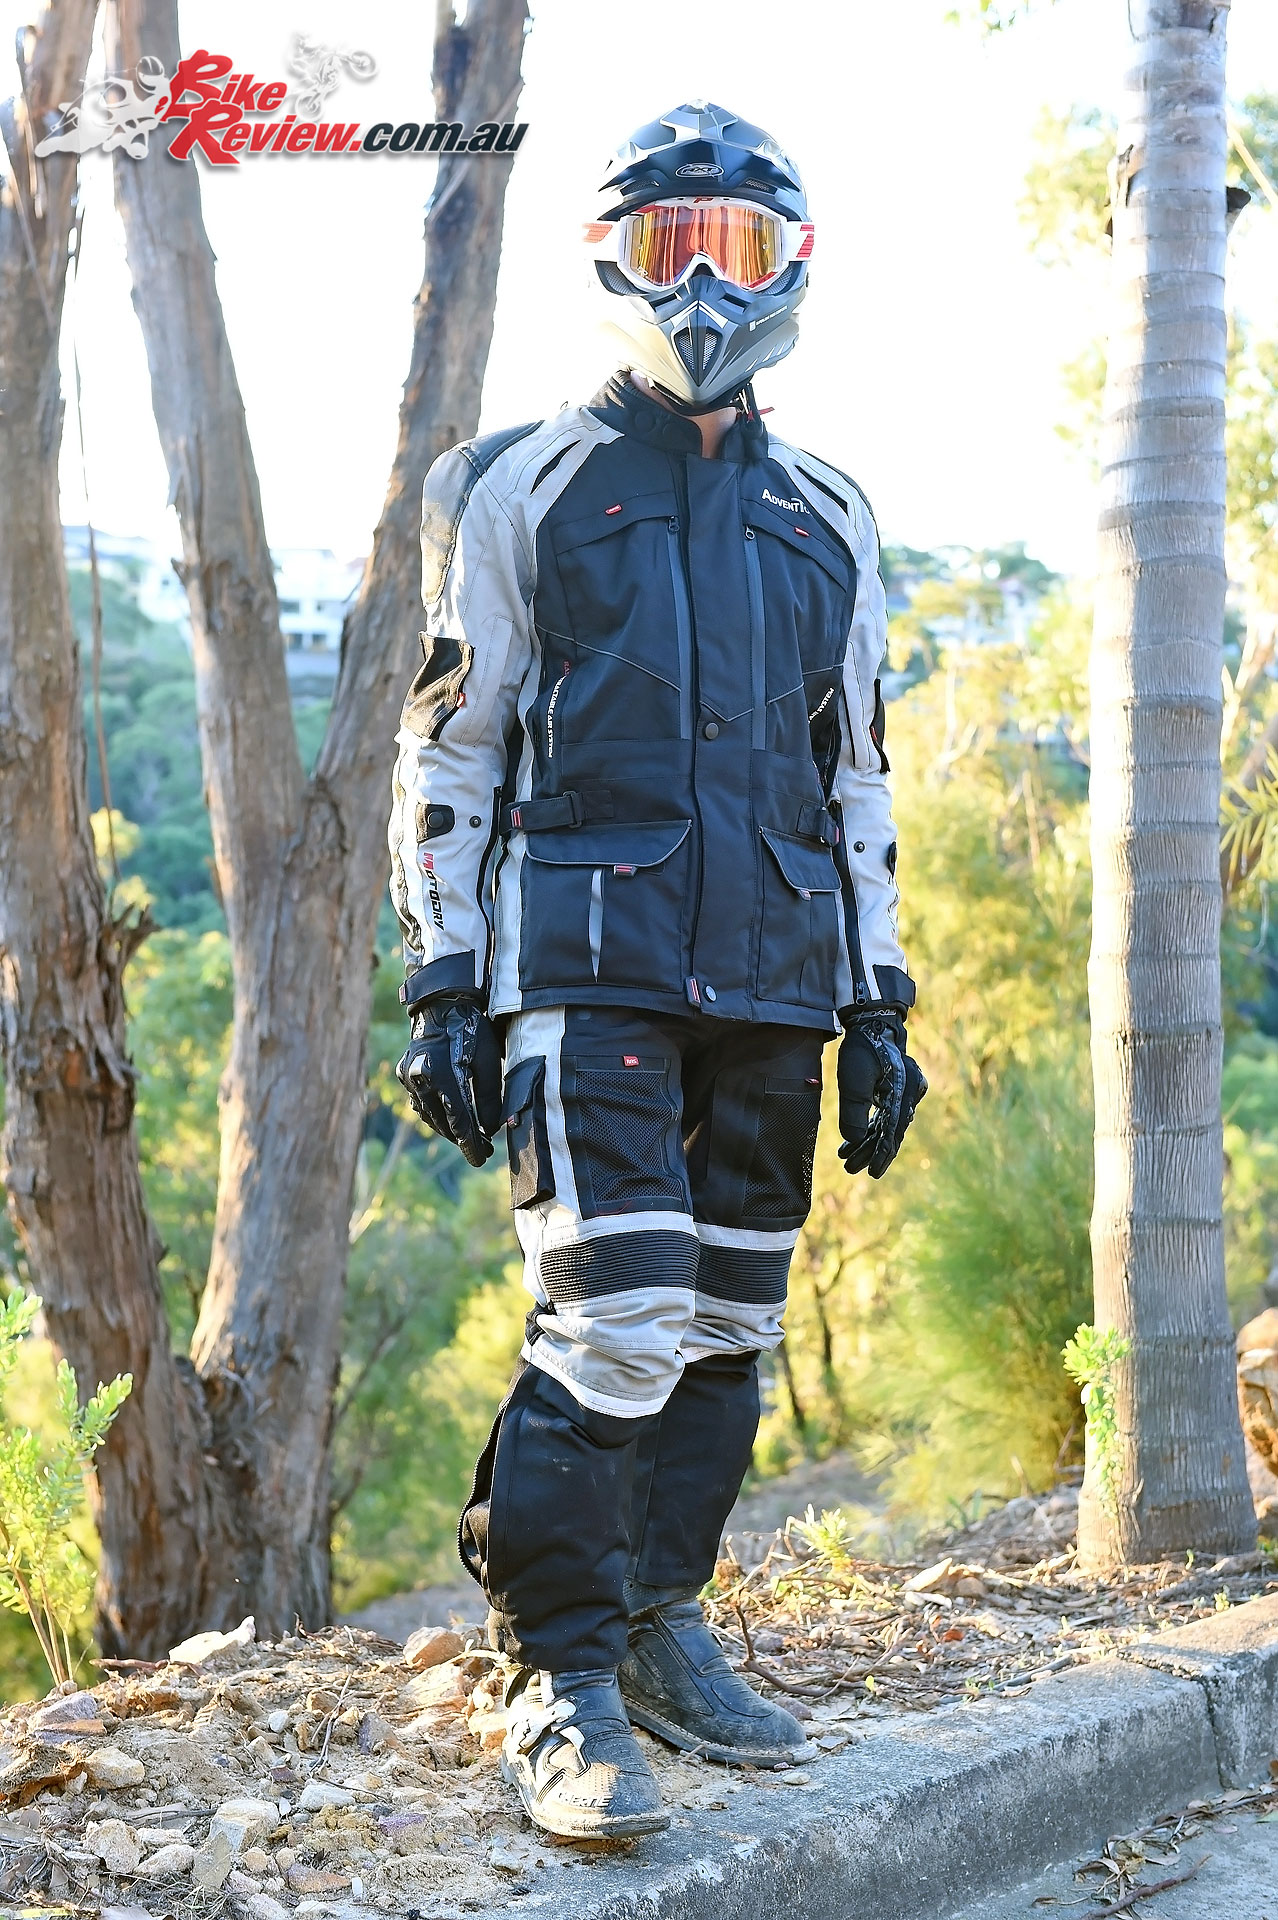 Ben O'Brien, MotoDry Advent Tour jacket and pants, RXT Edge helmet